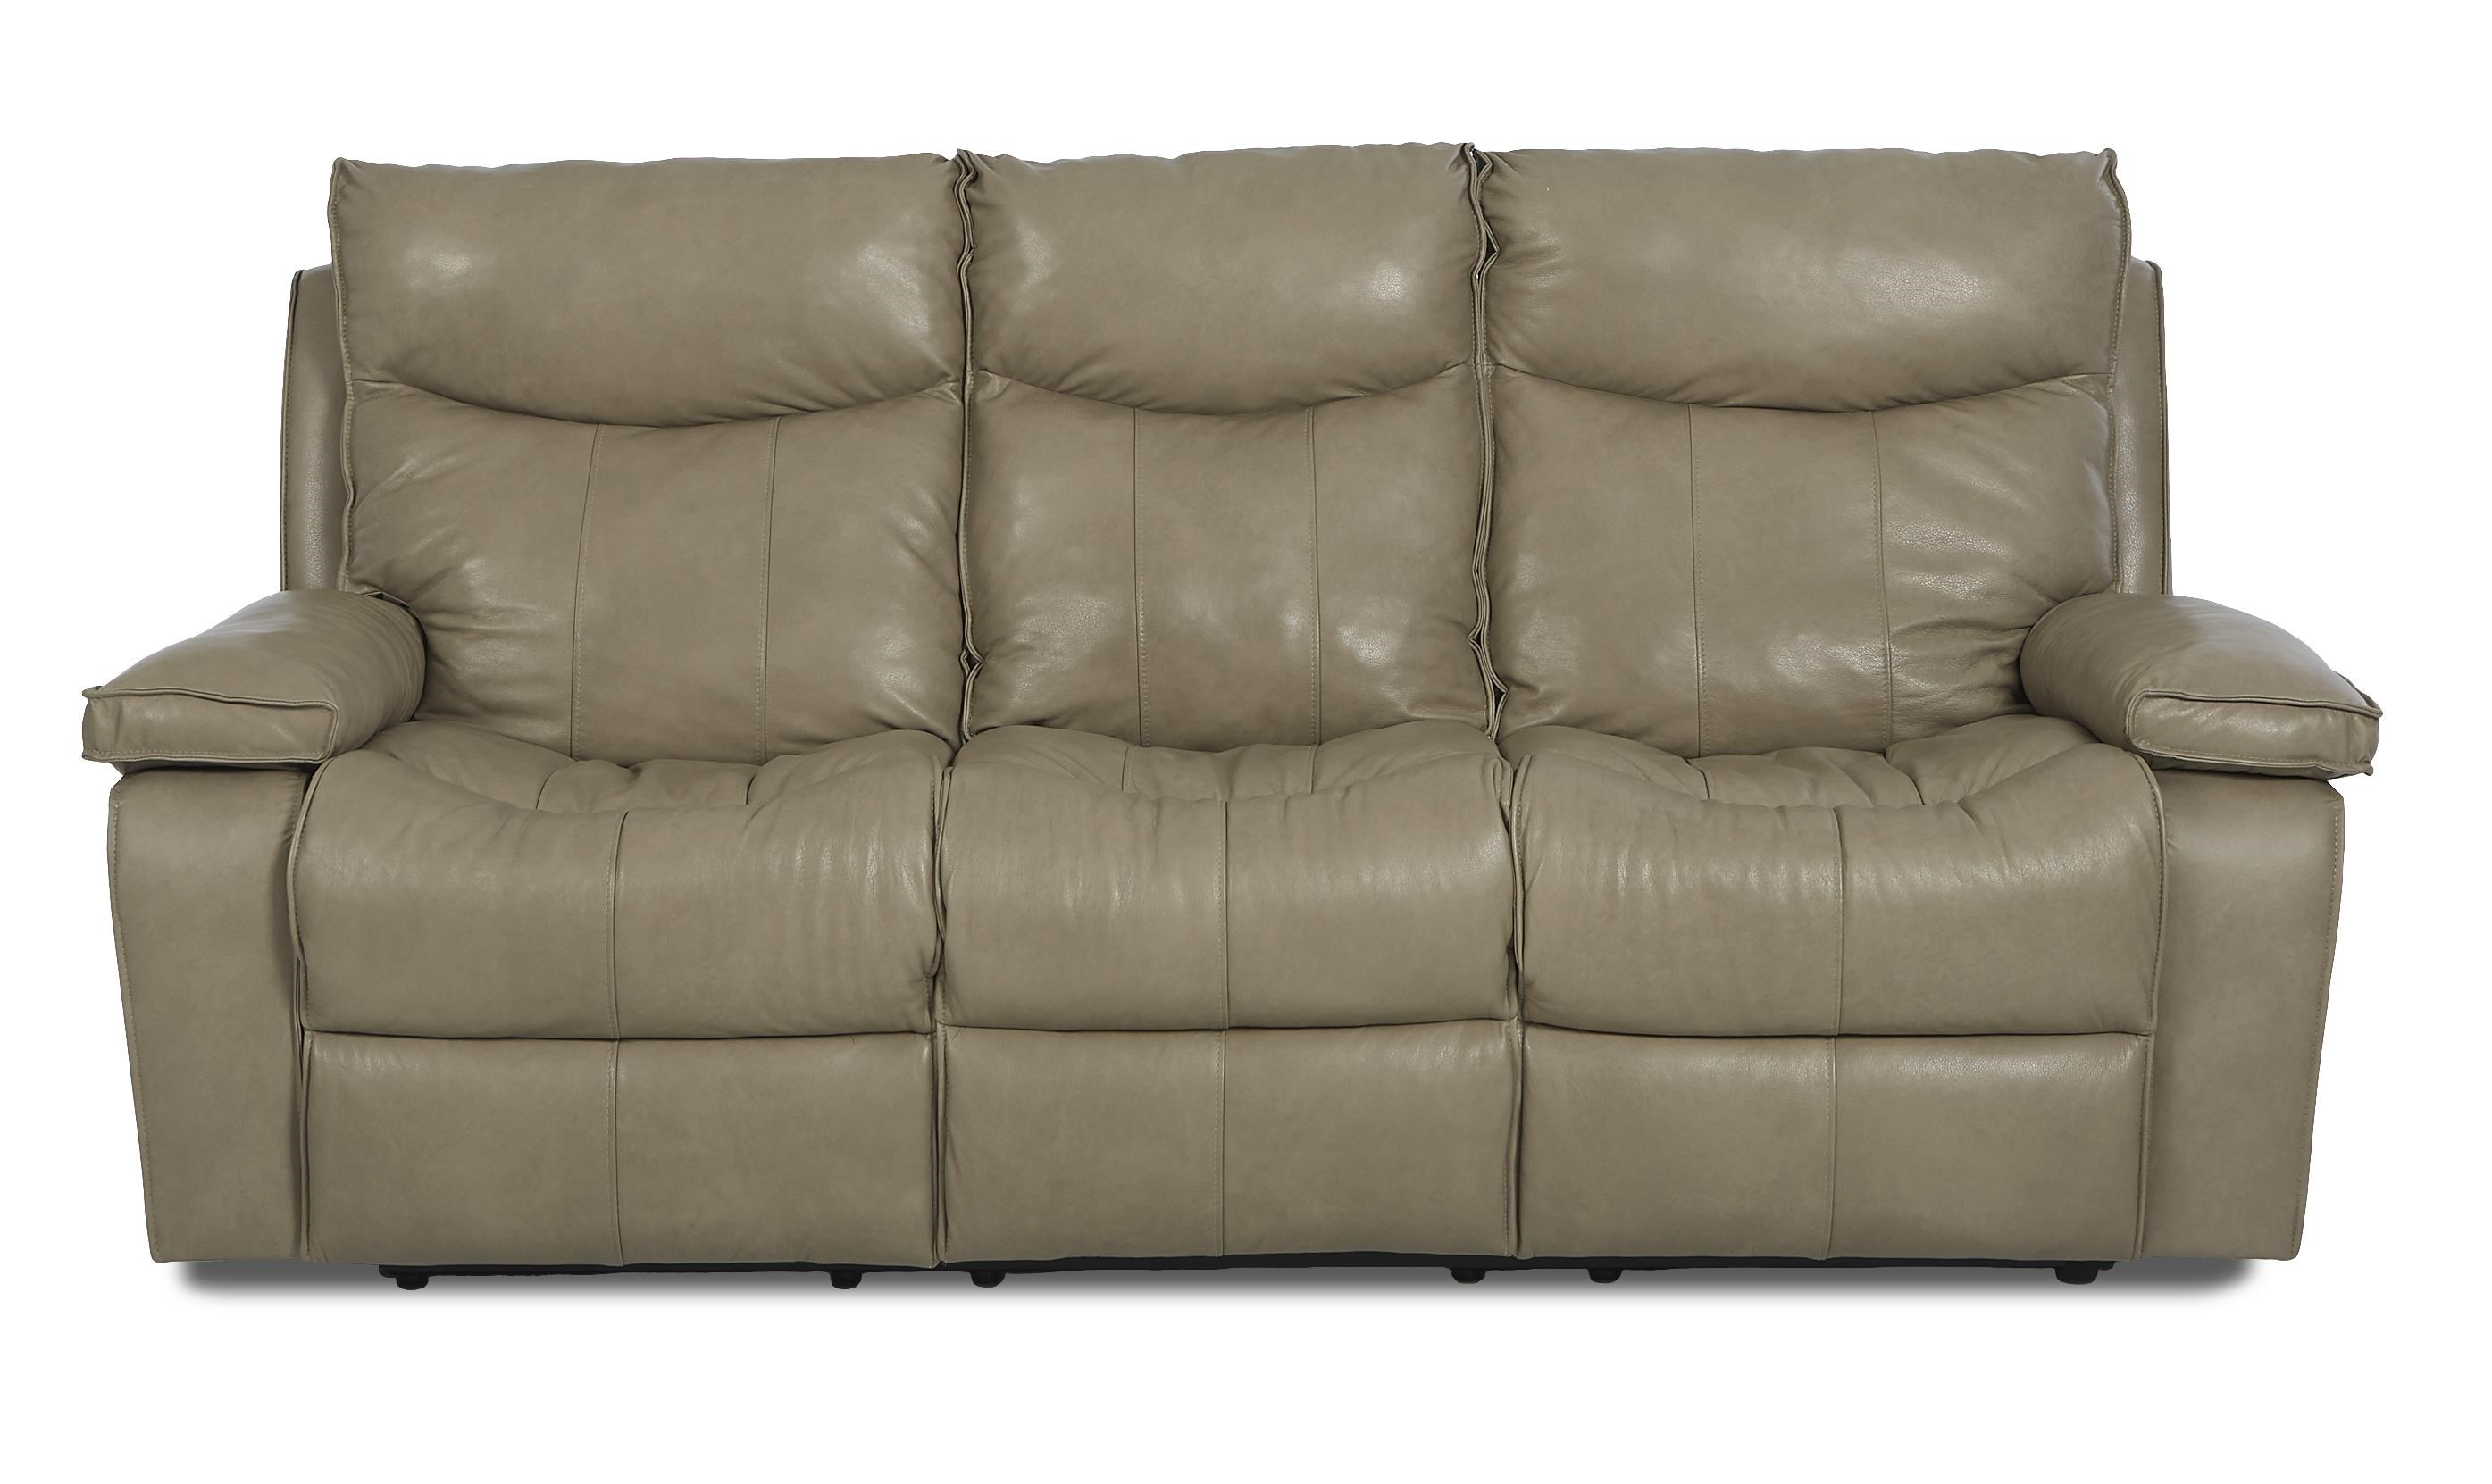 Klaussner Wilson Contemporary Power Reclining Sofa  sc 1 st  Wayside Furniture & Klaussner Wilson Contemporary Power Reclining Sofa - Wayside ... islam-shia.org